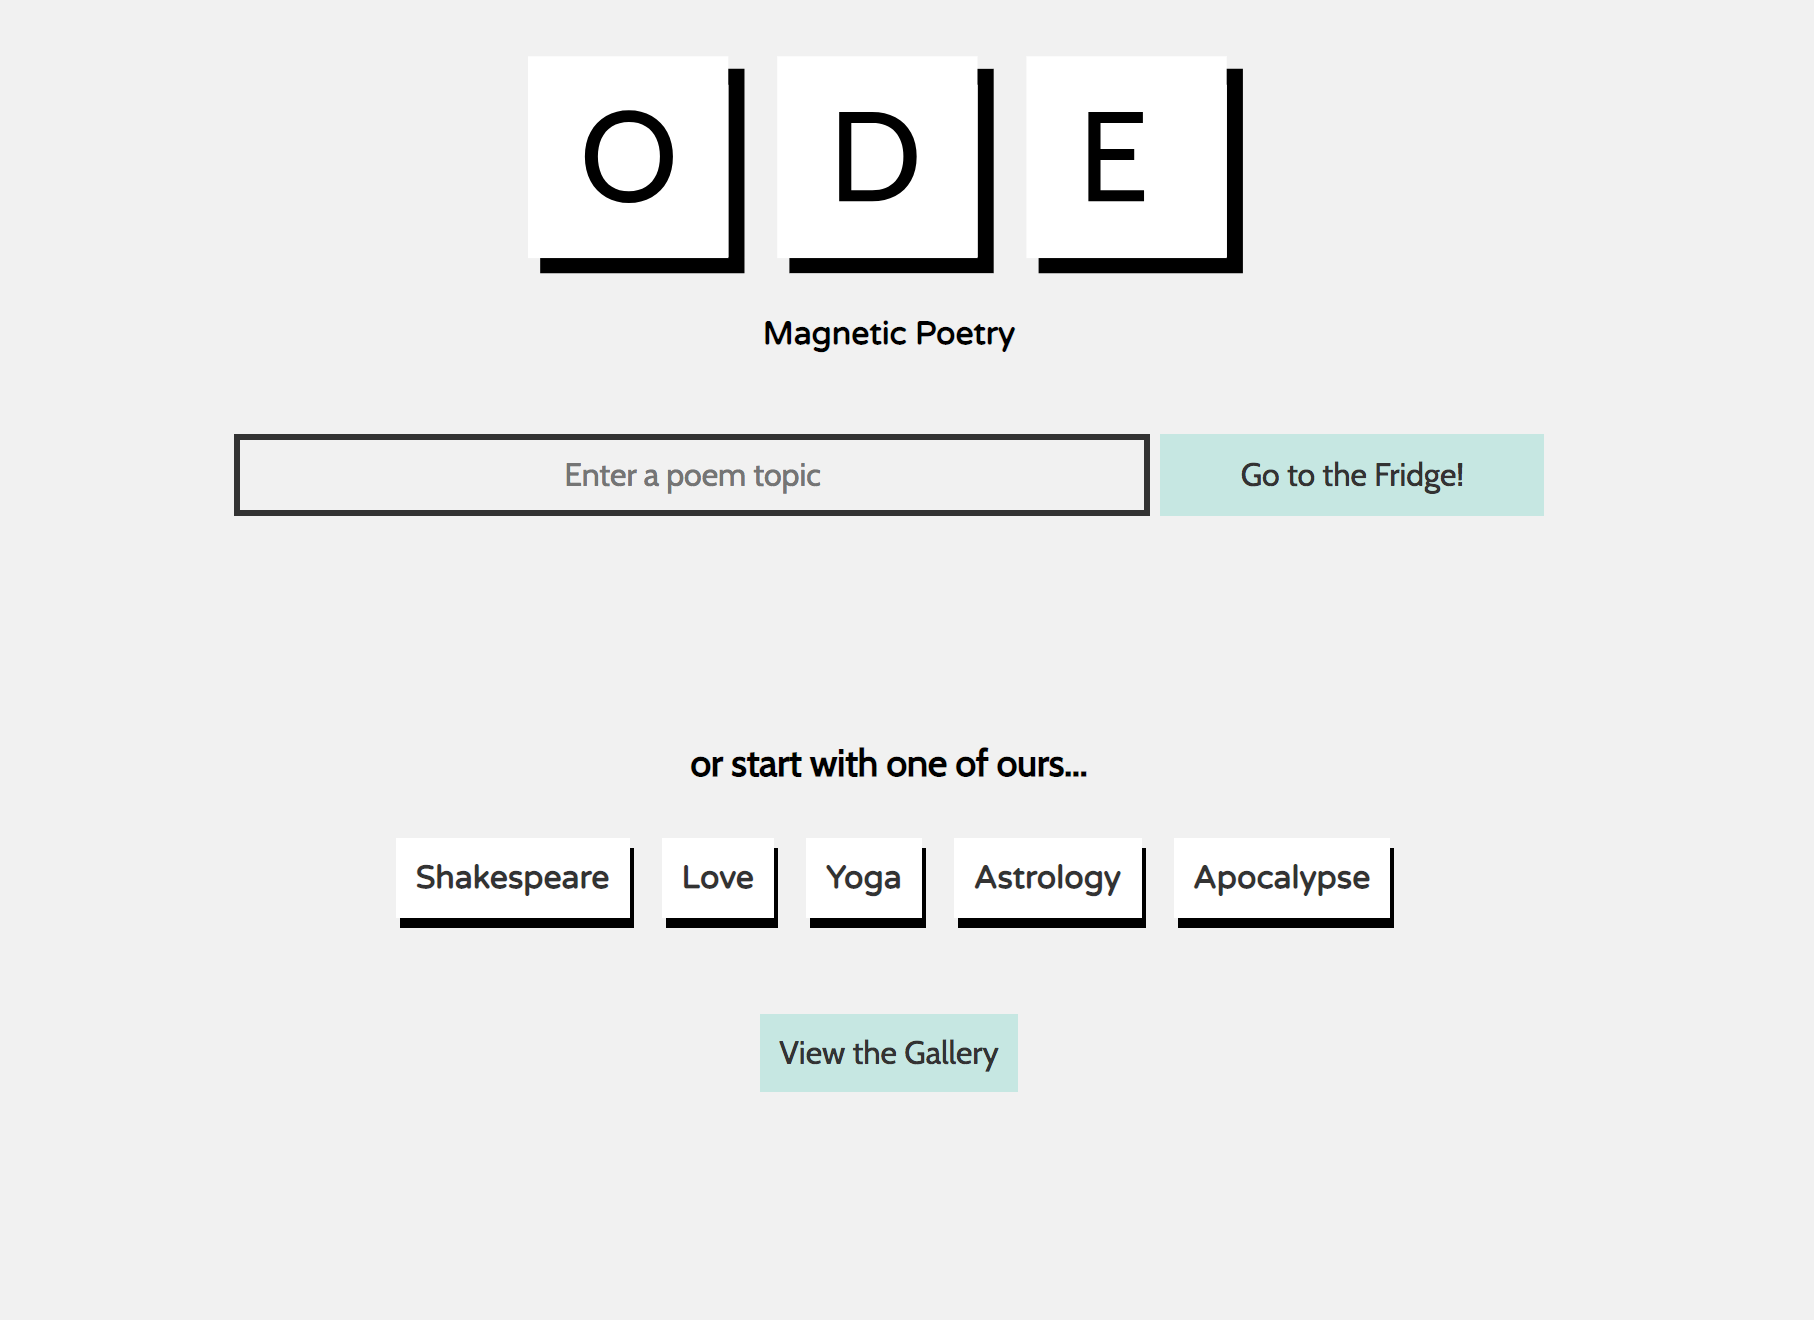 screenshot of ode poetry home page with a search bar and button that says Go to Fridge